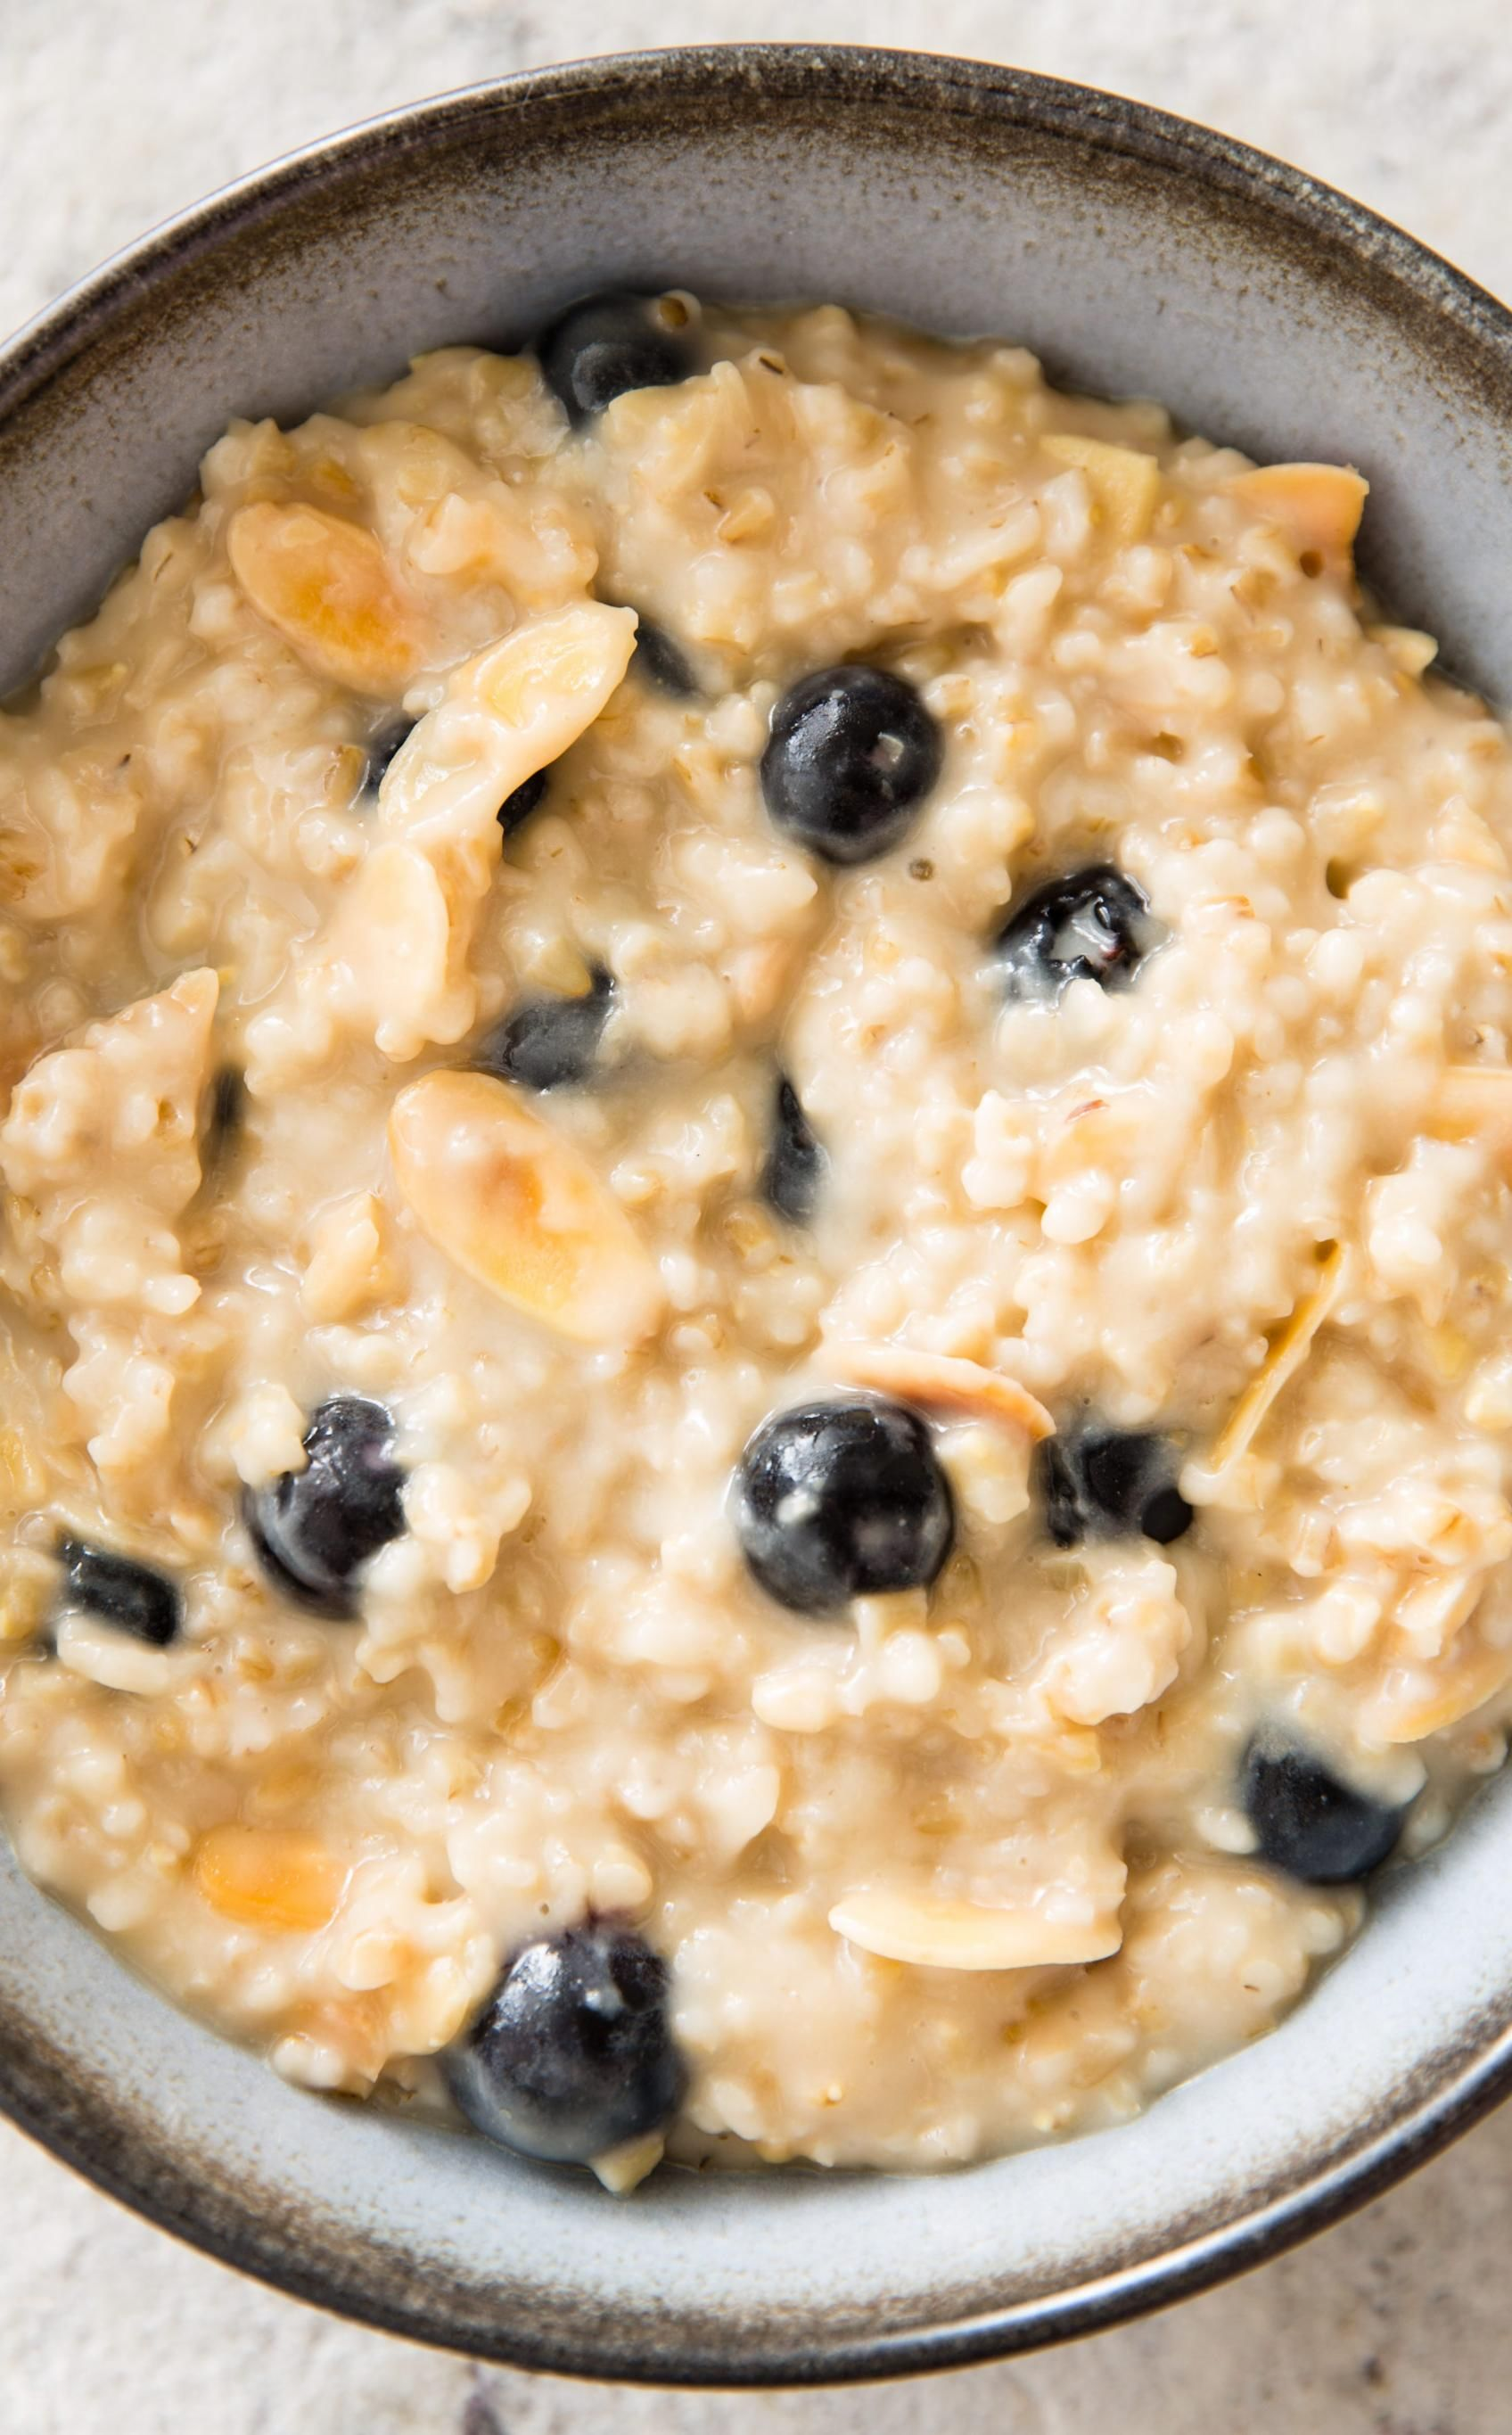 Sous Vide Oatmeal Stovetop Can Go From Chewy To Mushy In An Instant But Gives You Tender Creamy Oats Every Time